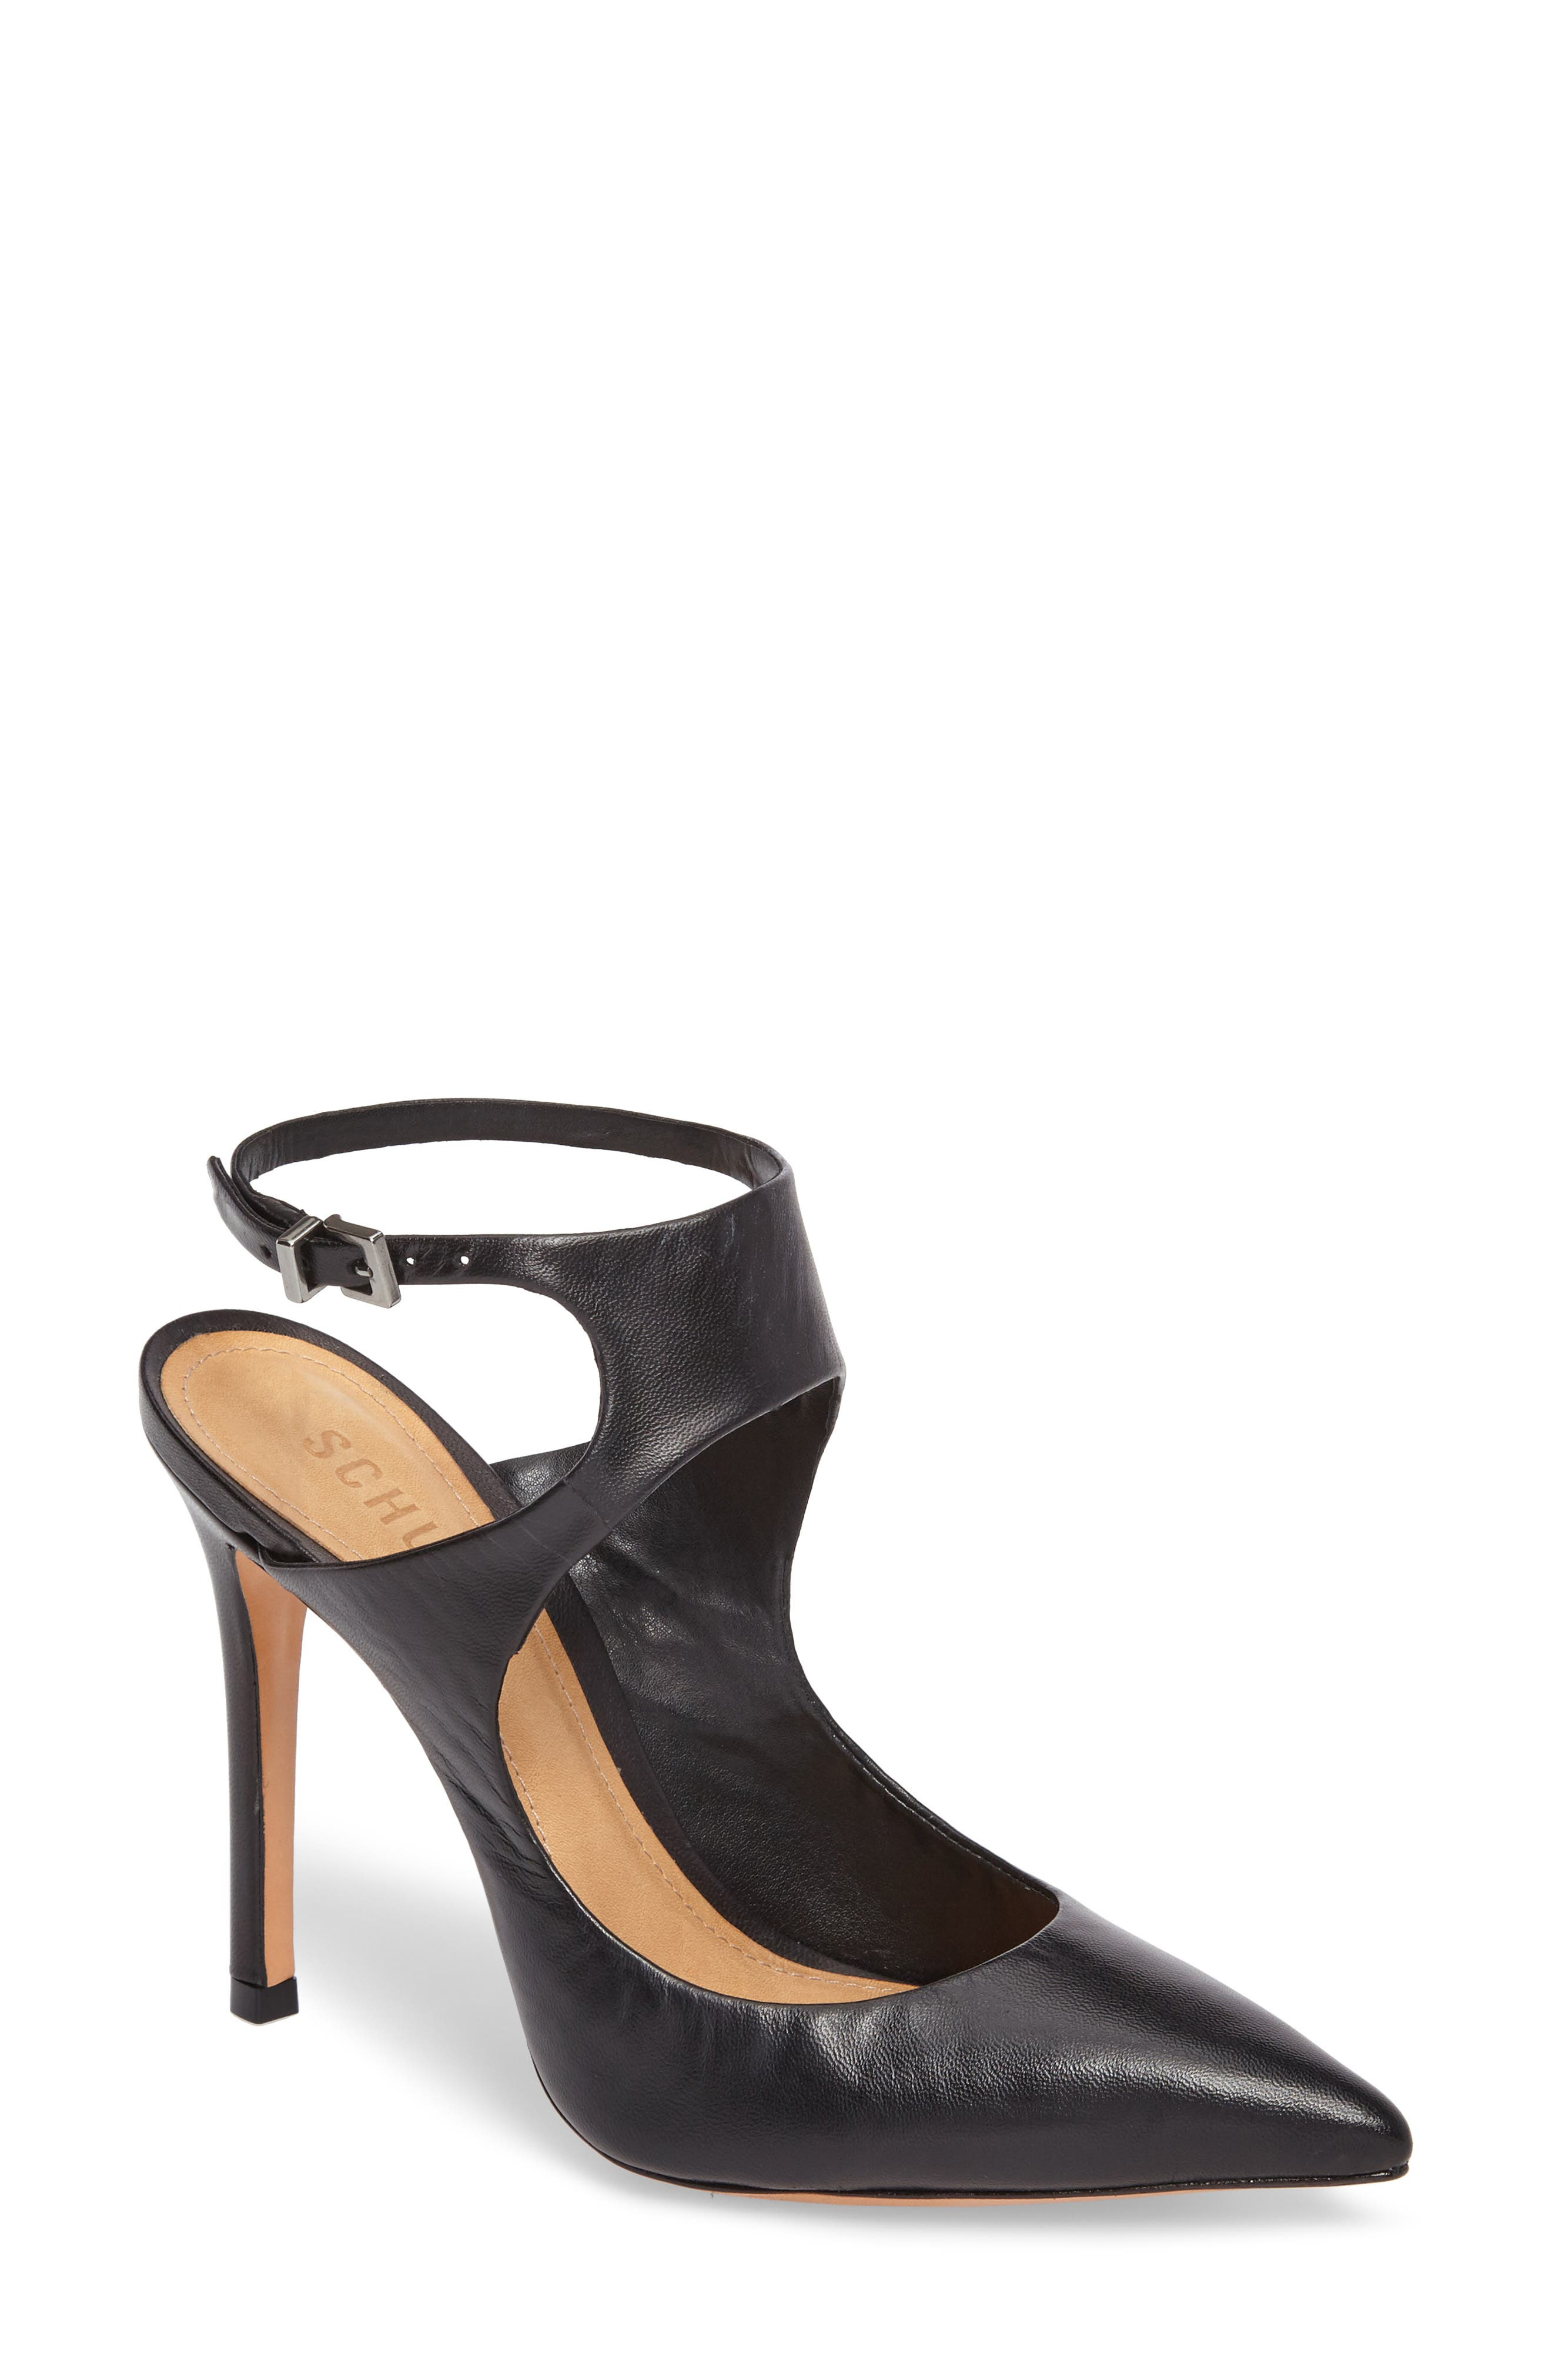 Alternate Image 1 Selected - Schutz Lucina Pump (Women)